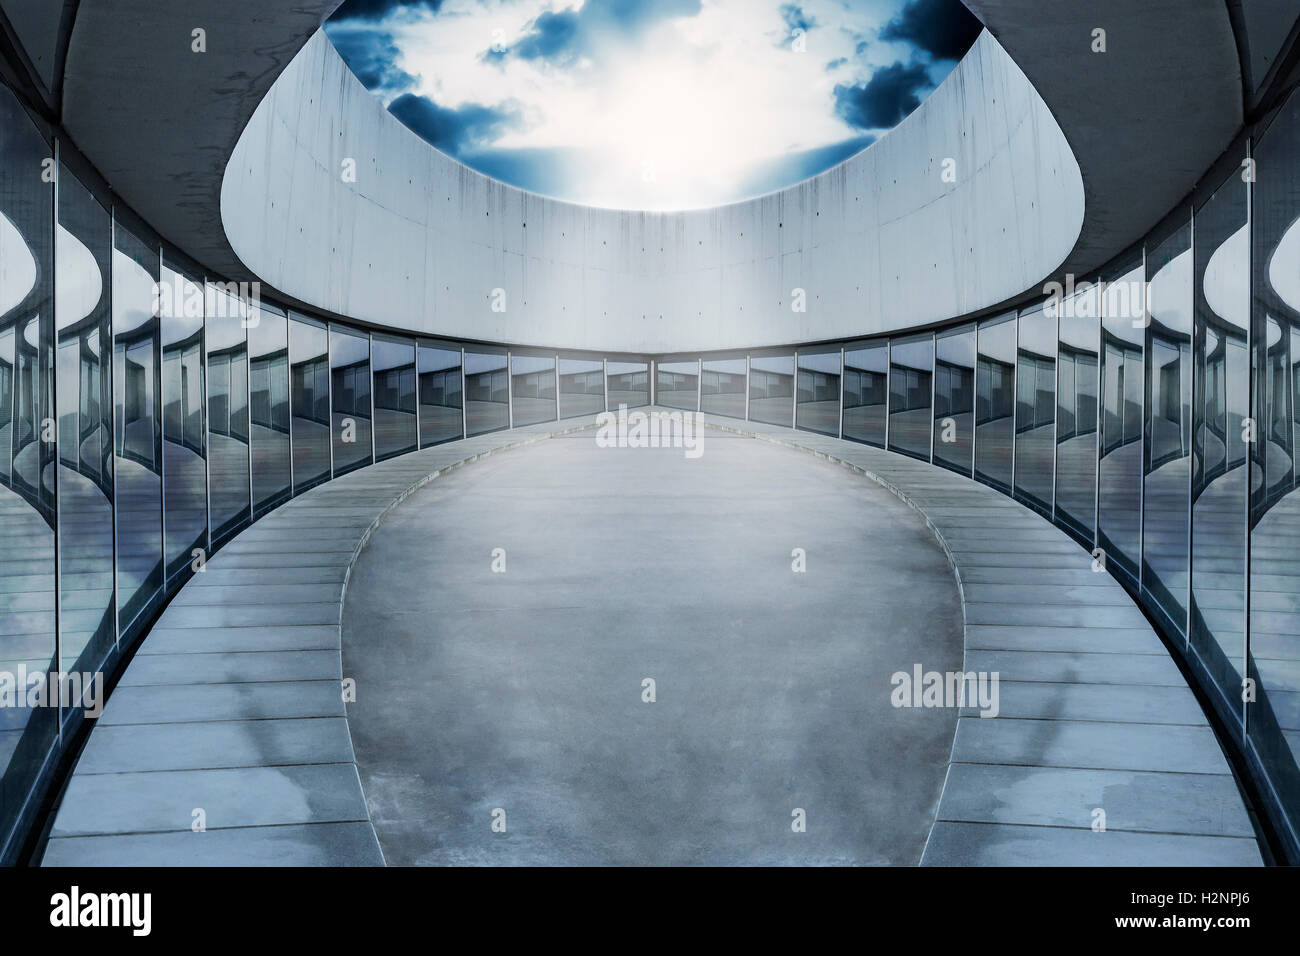 Empty oval arena with surrounding glass panels. The ceiling is open and lets the sun break through the dramatic - Stock Image